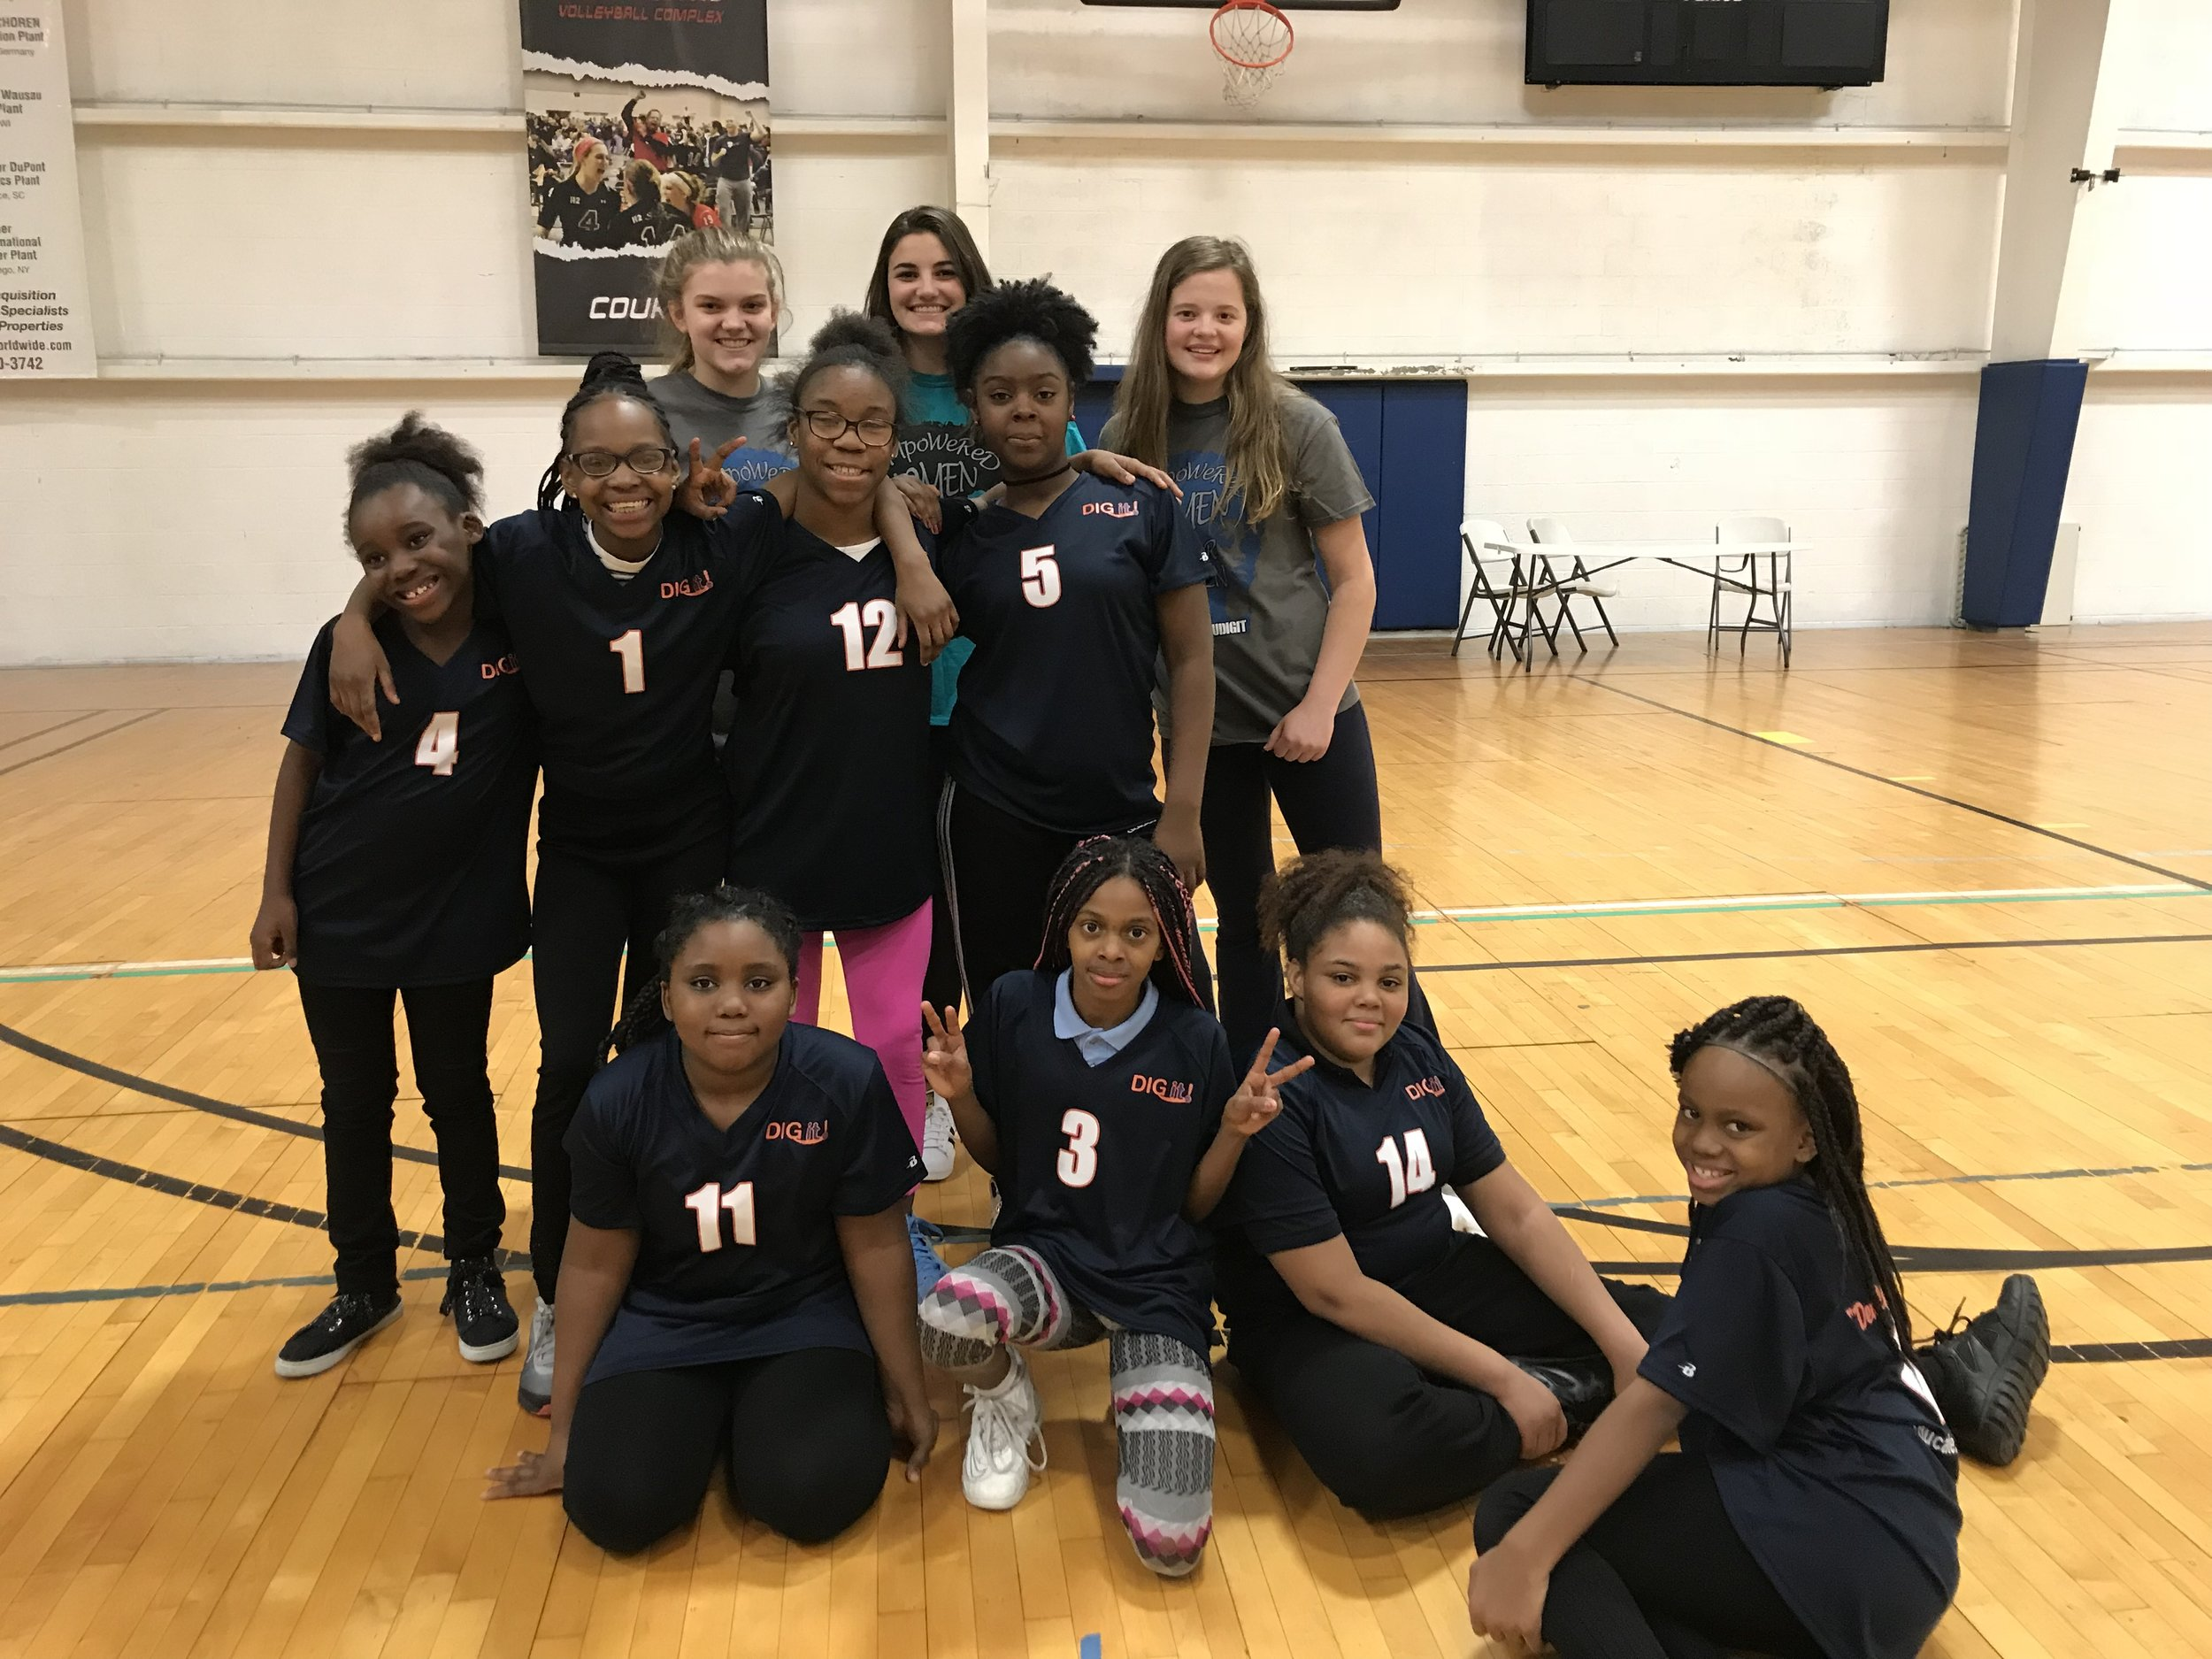 Granneman Elementary BGCSTL DIG it! Team - Granneman Elementary's Boys & Girls Club DIG it! Volleyball Team is located in North County of St. Louis, MO. The team consists of 4th-6th grade girls who have been members of the DIG it! Program for the last 3 years!